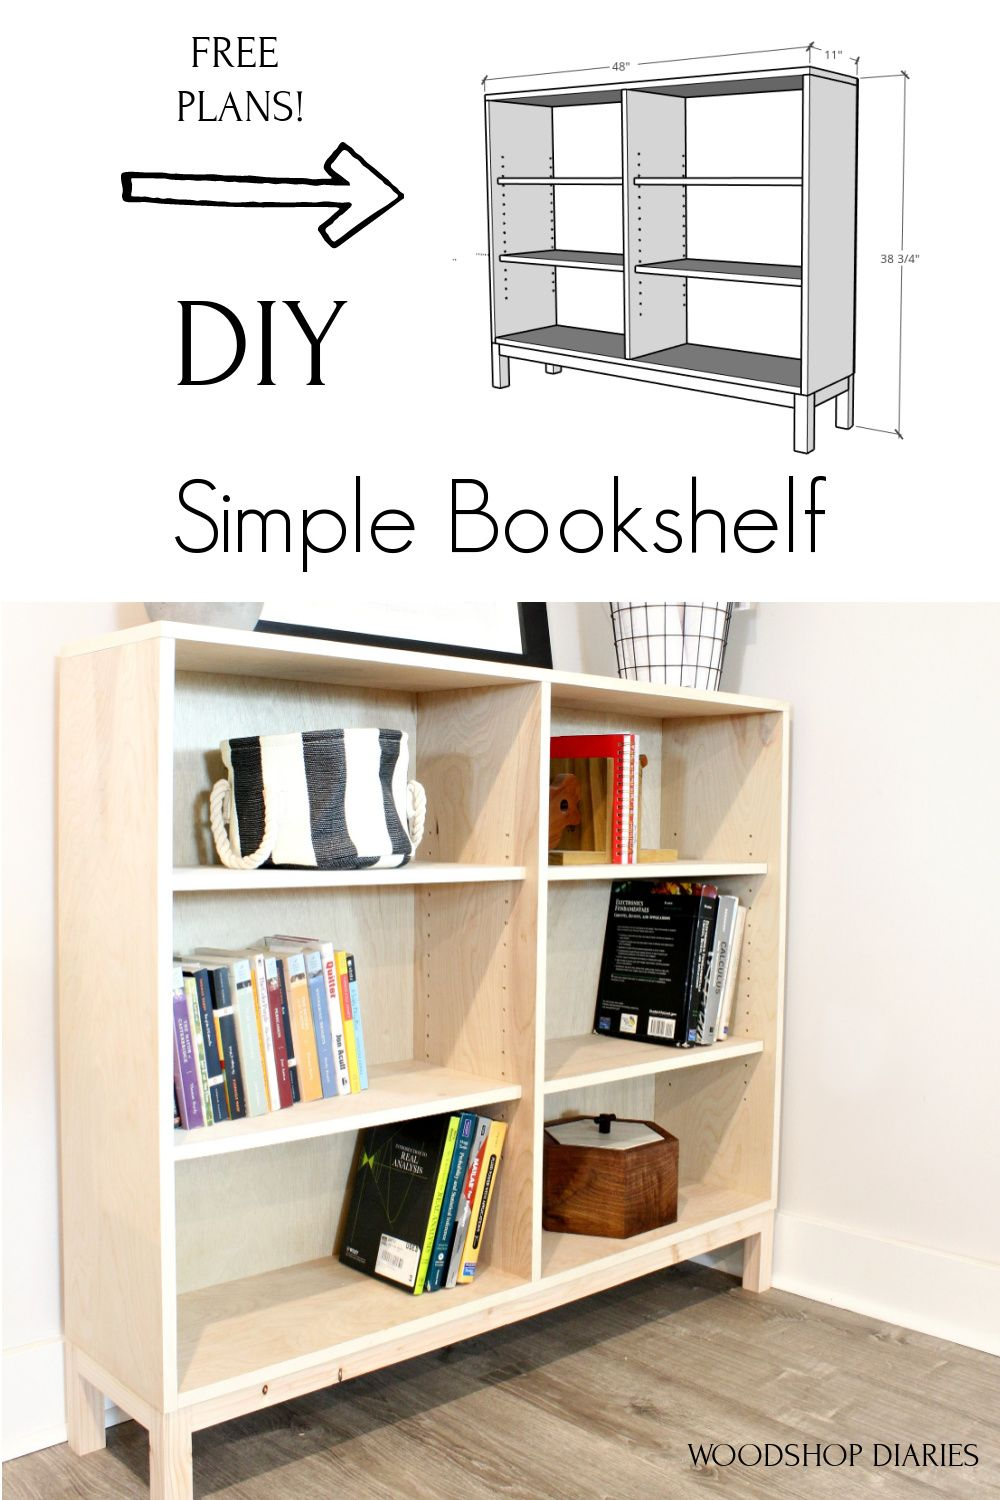 One Sheet Plywood Bookshelf 6 Steps And Free Building Plans In 2020 Bookshelves Diy Bookshelf Woodworking Plans Simple Bookshelf